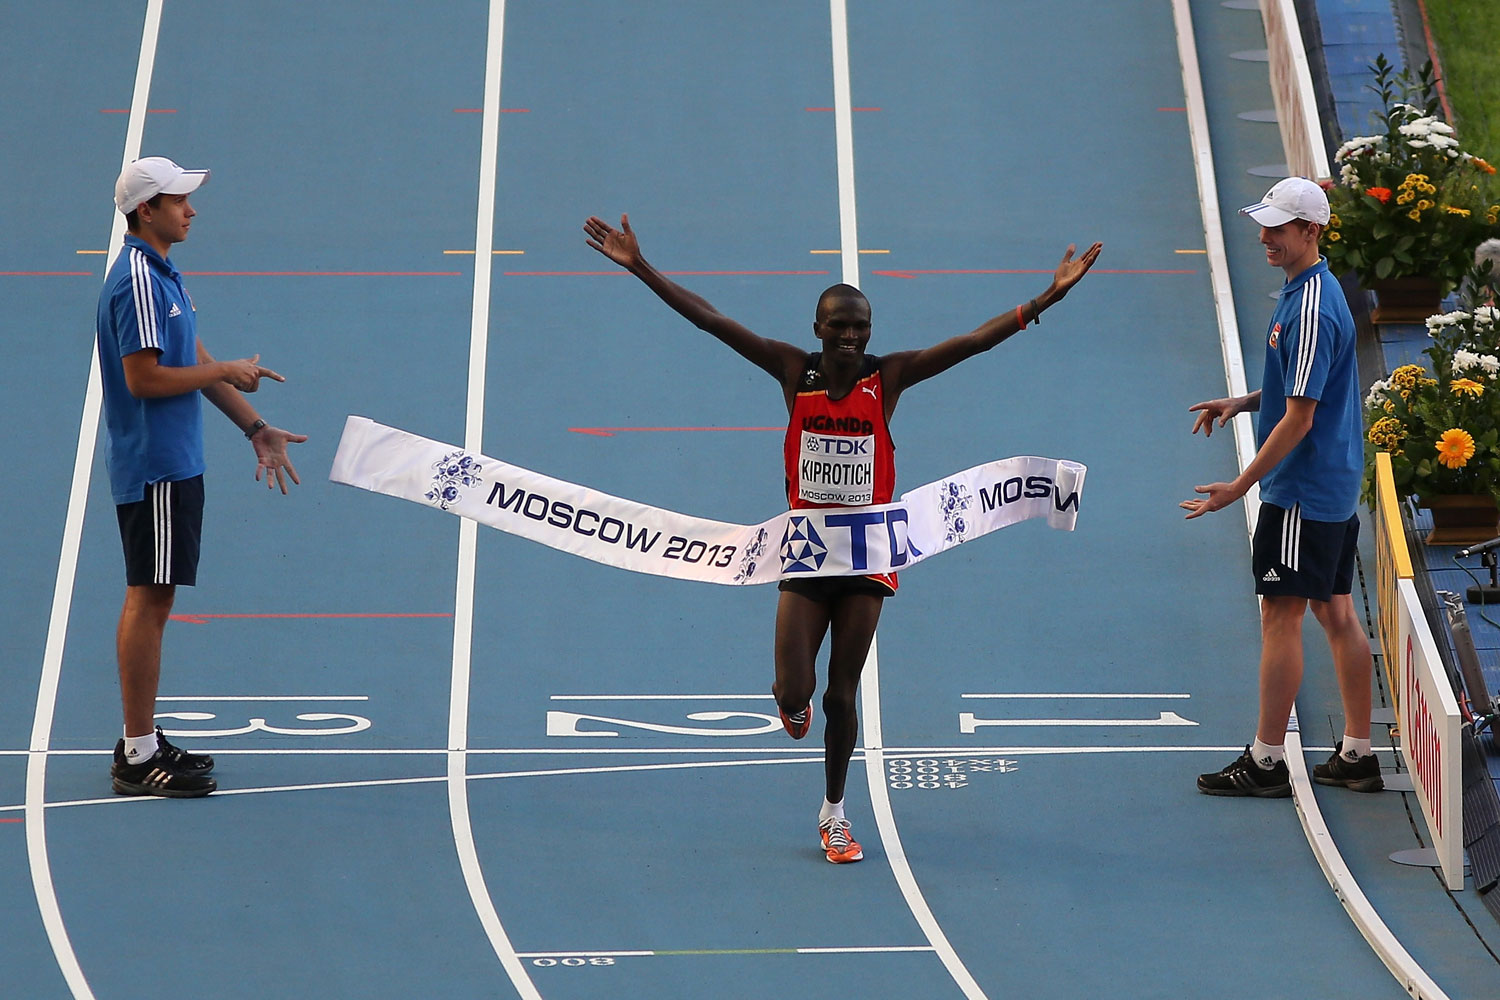 Stephen Kiprotich crosses the finish line to win gold in the 14th IAAF World Athletics Championships Moscow.